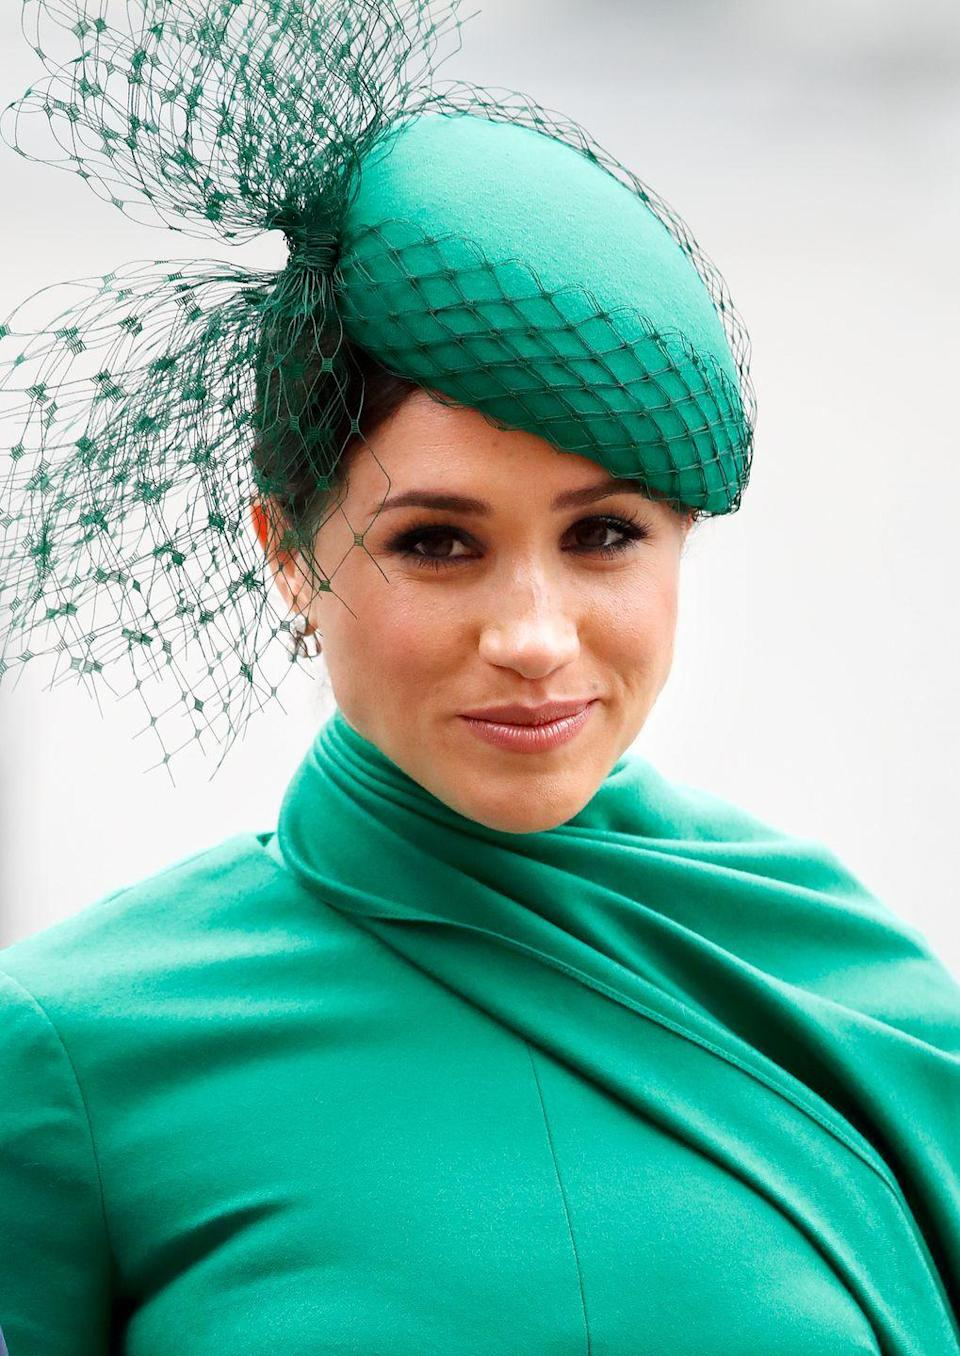 "<p>During one of <a href=""https://www.townandcountrymag.com/style/fashion-trends/a31351877/meghan-markle-final-royal-fashion-bold-looks/"" rel=""nofollow noopener"" target=""_blank"" data-ylk=""slk:her final appearances as a working royal"" class=""link rapid-noclick-resp"">her final appearances as a working royal</a>, the Duchess of Sussex stunned in an emerald Emilia Wickstead dress and matching fascinator by William Chambers.<br></p>"